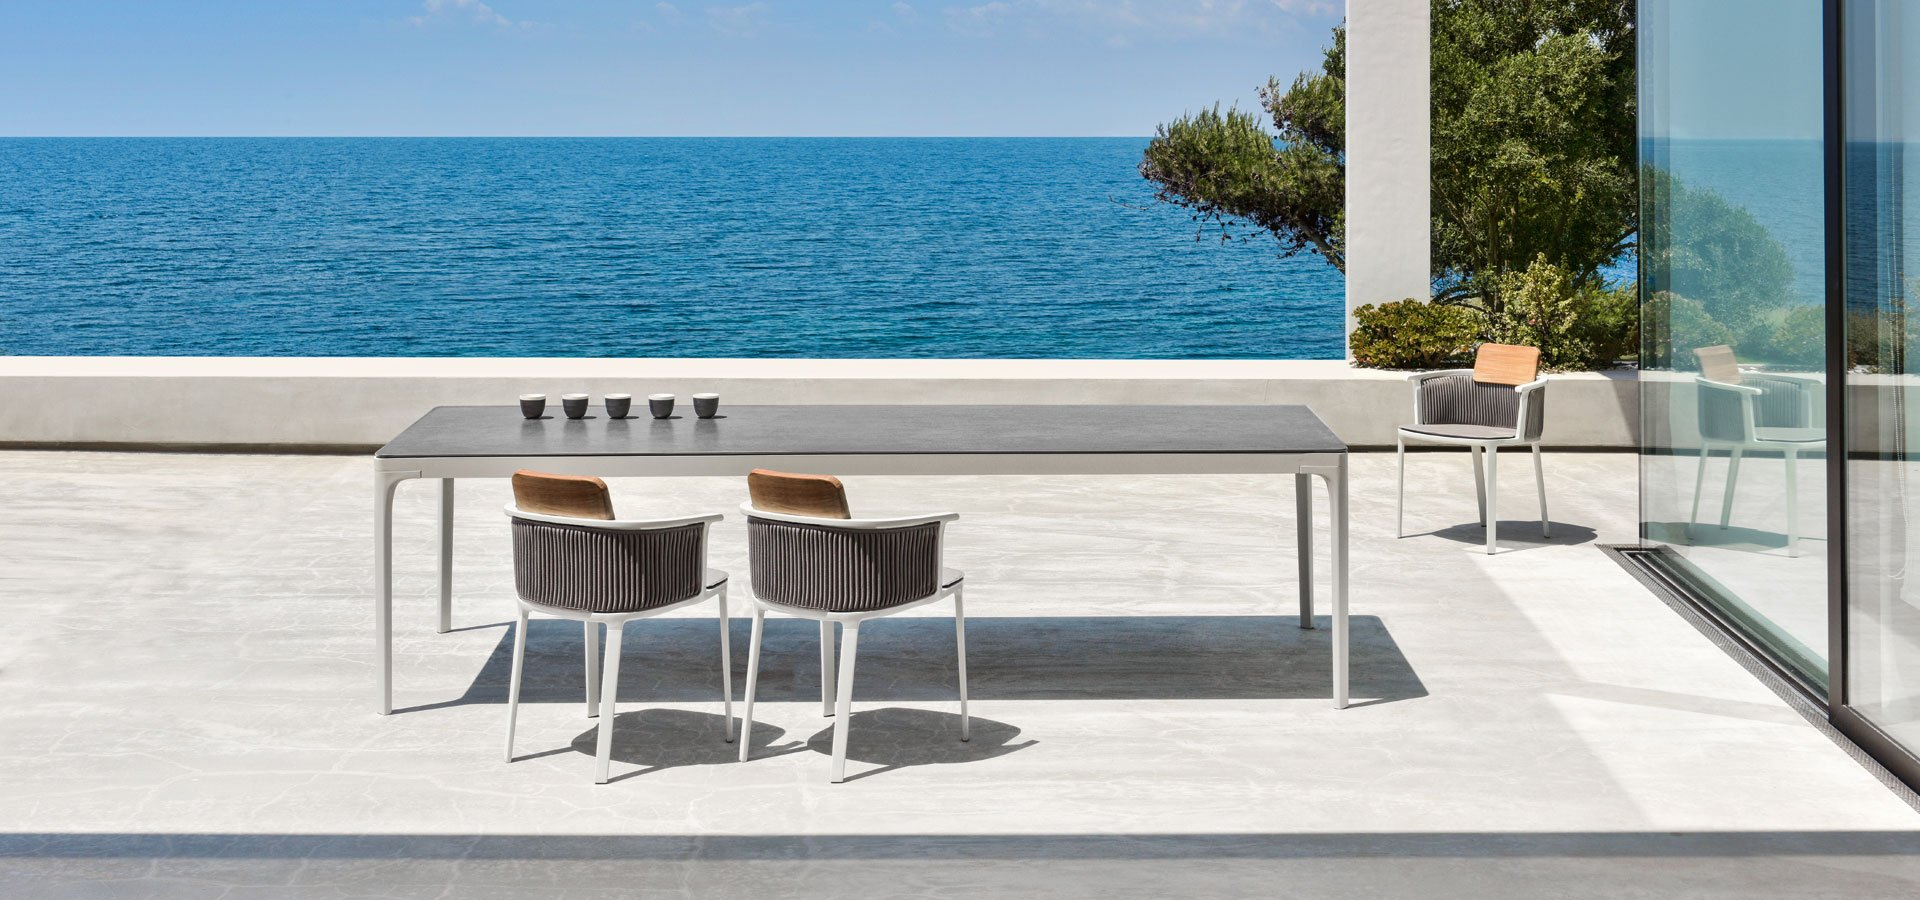 Play Dining Table from Ethimo, designed by Ethimo Studio